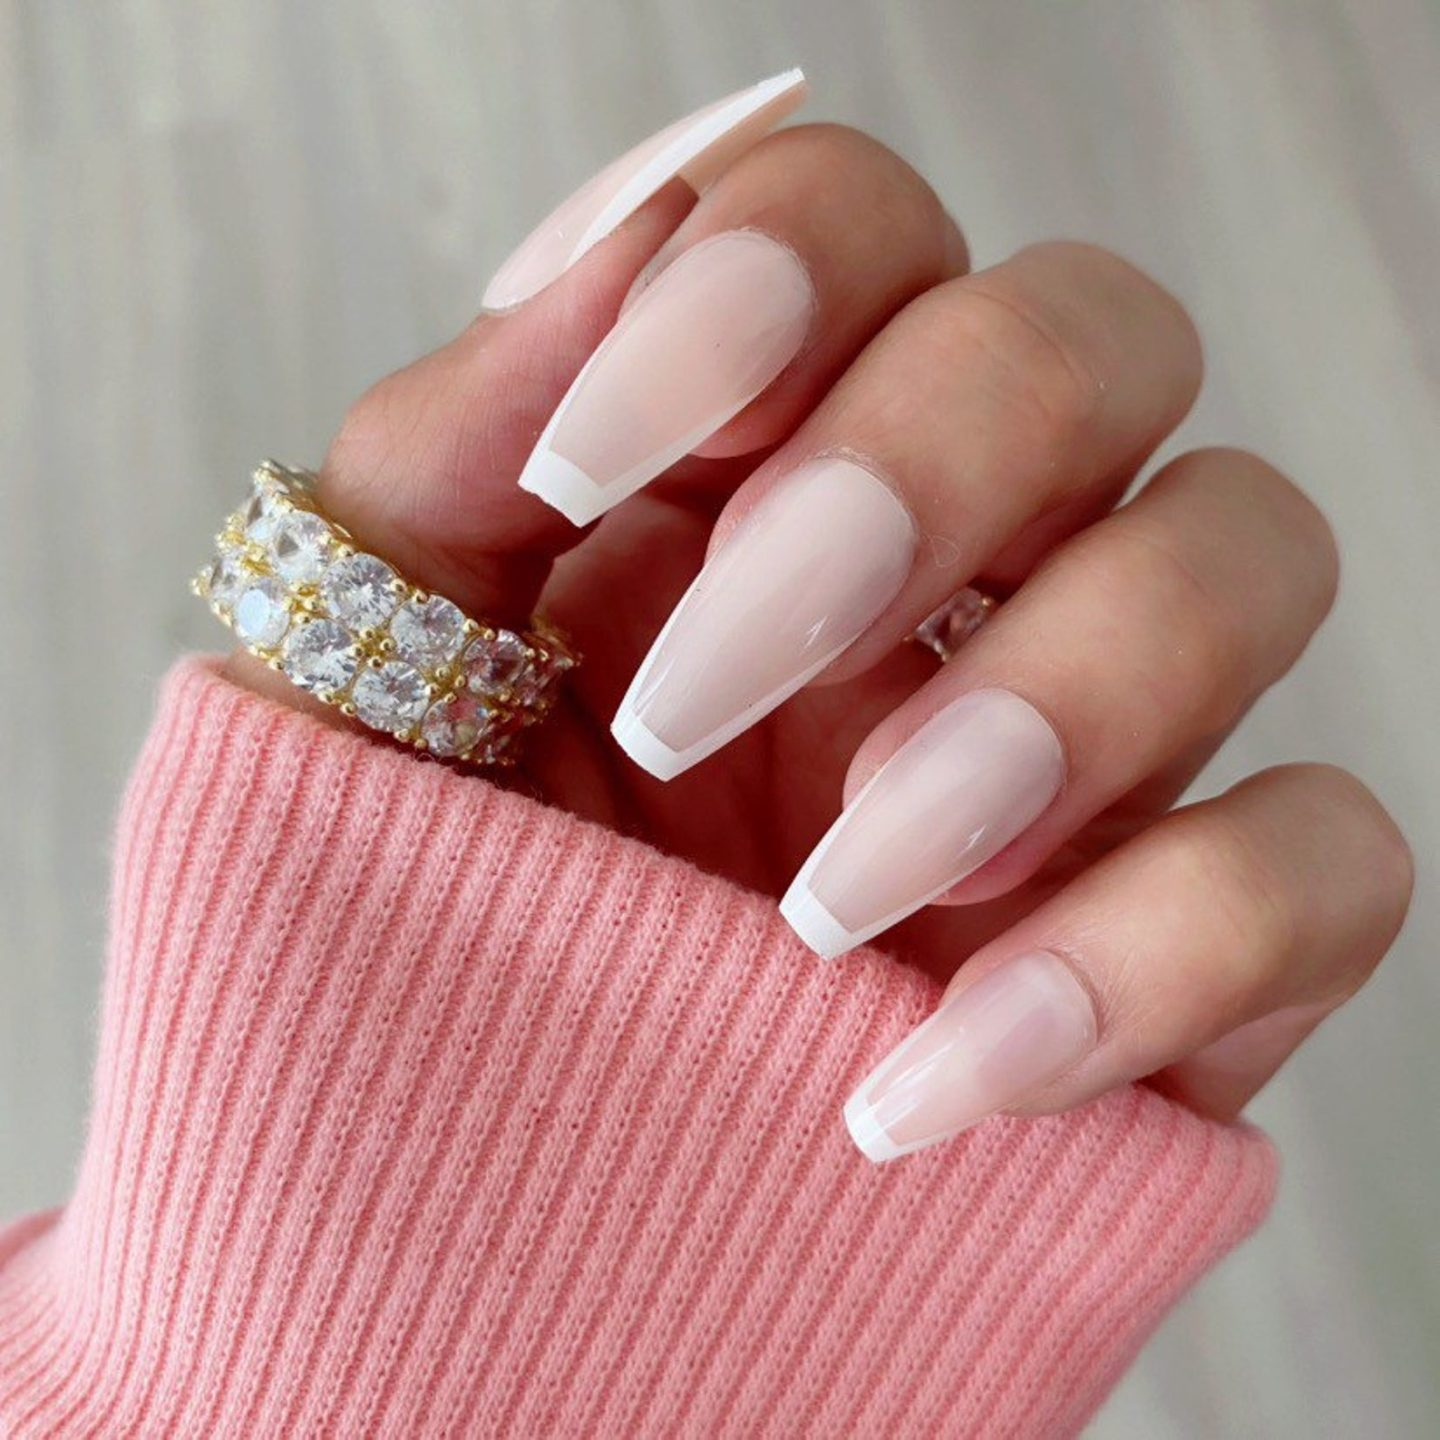 Simple and minimalist French tip coffin nails